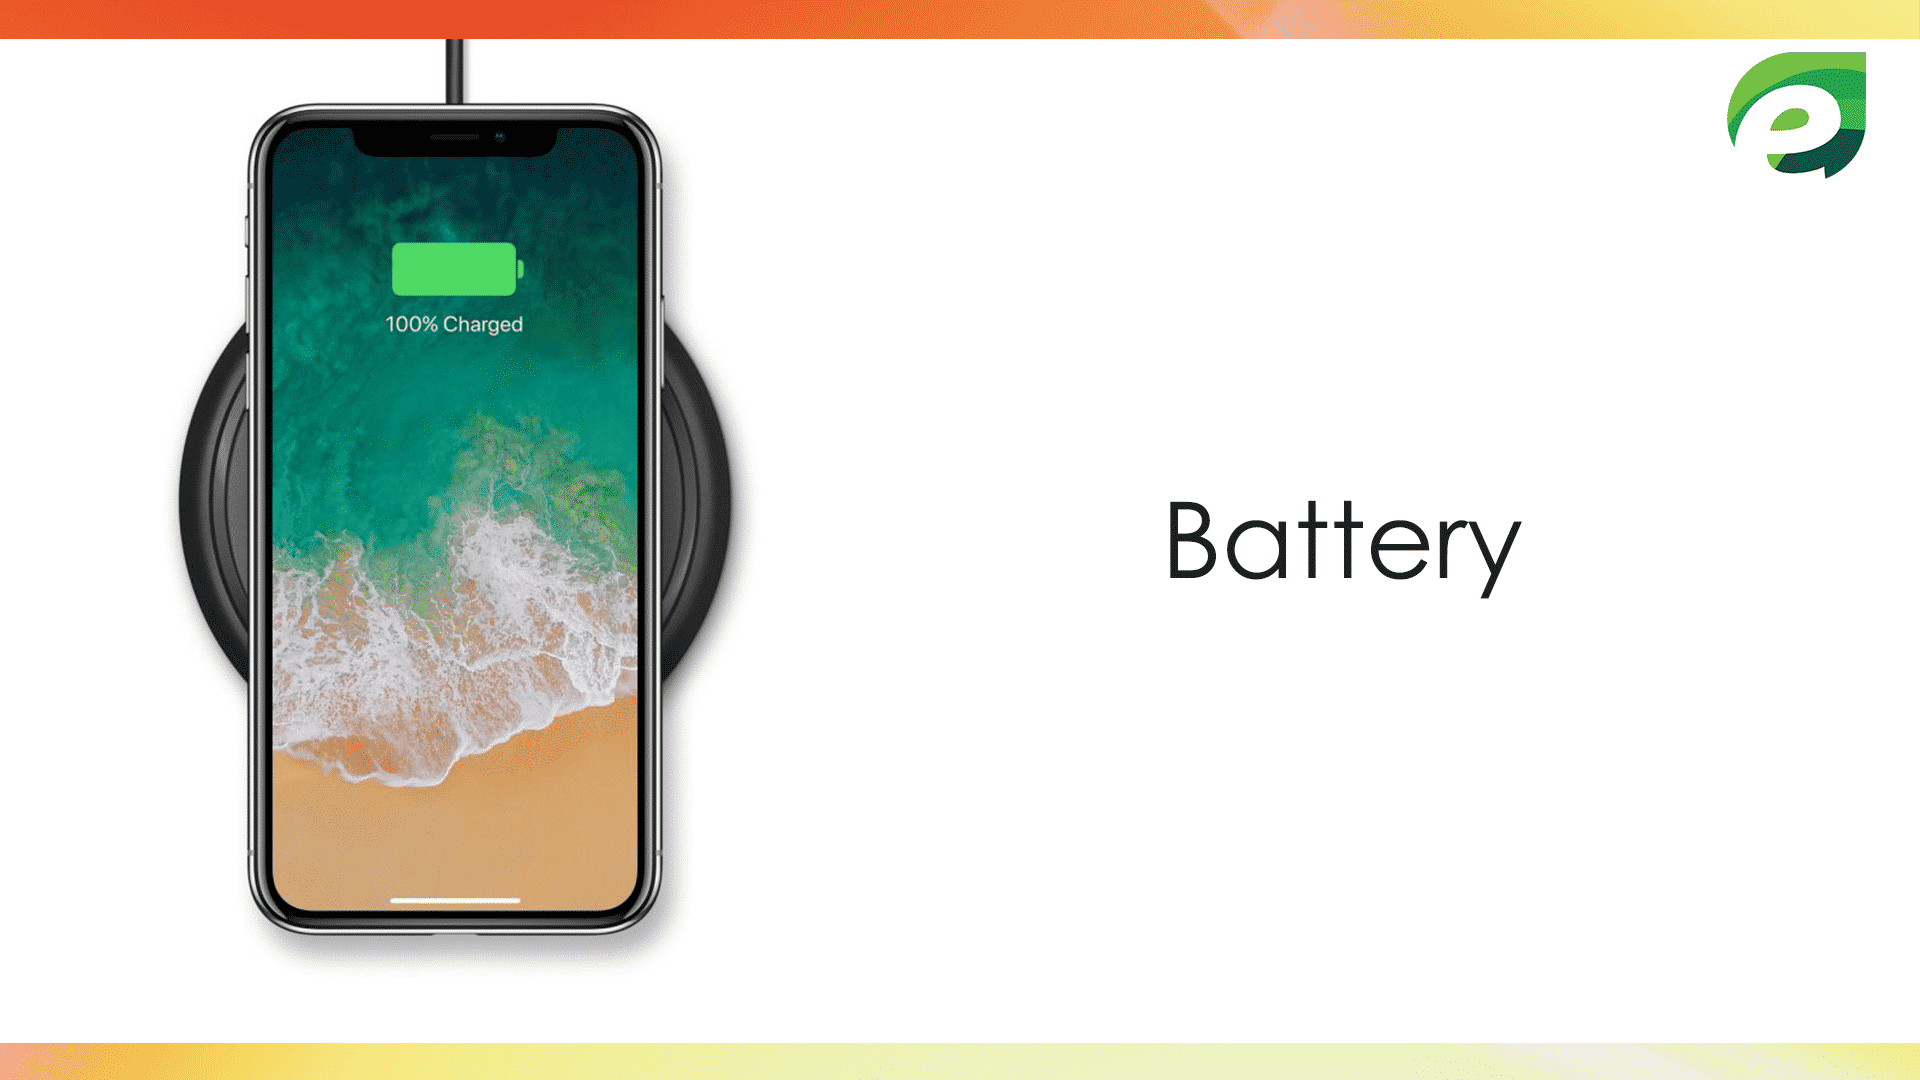 iphone x- Battery